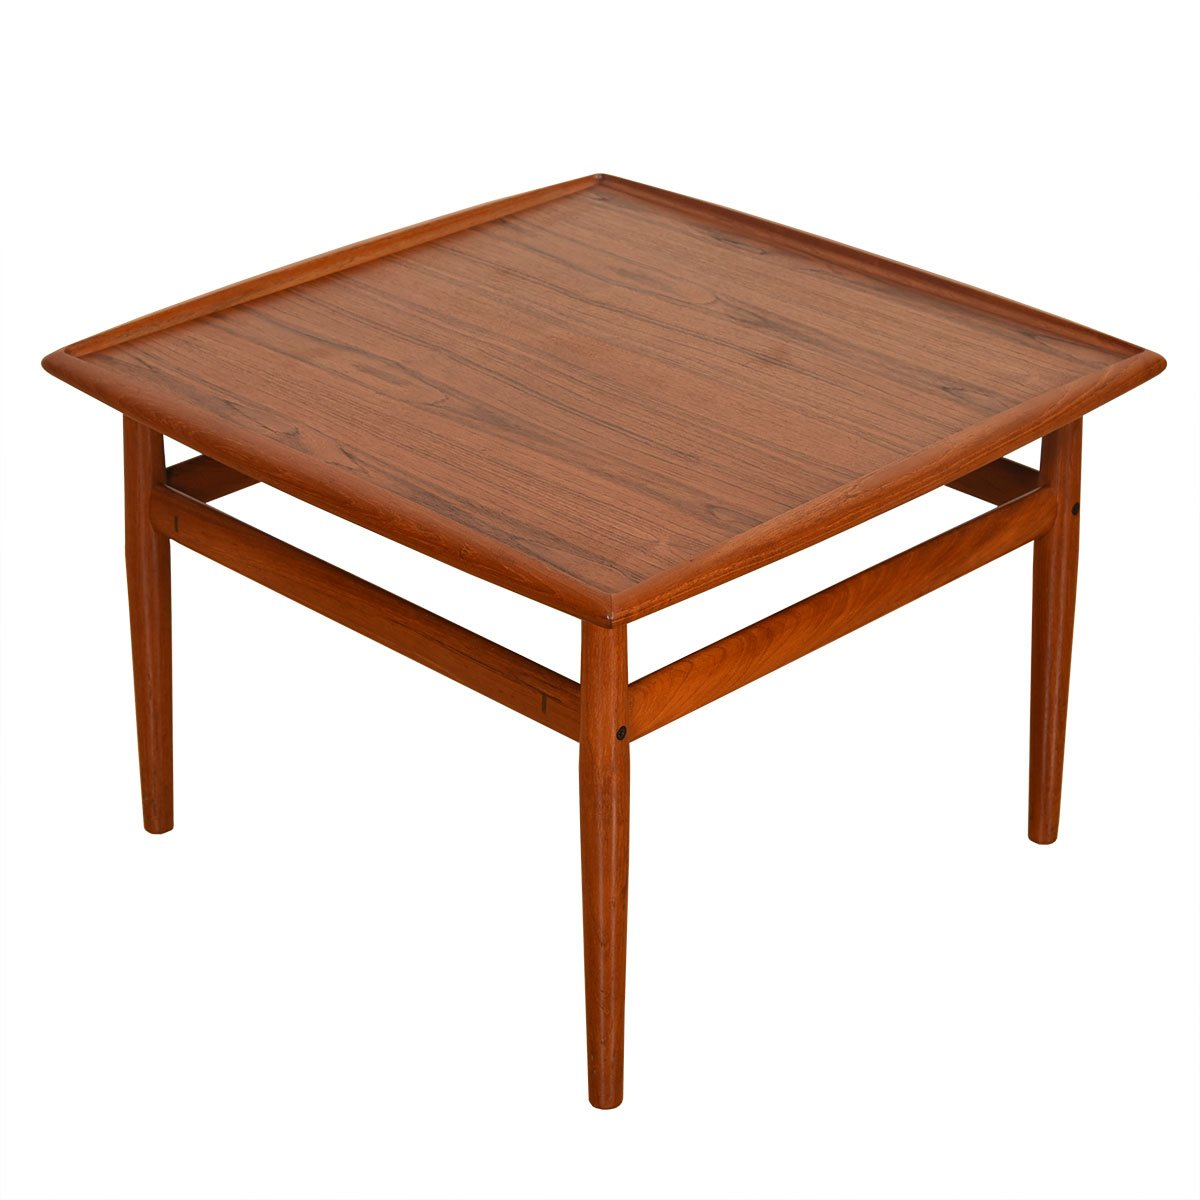 Raised Lip Edge 28″ Square Coffee Table by Grete Jalk in Teak